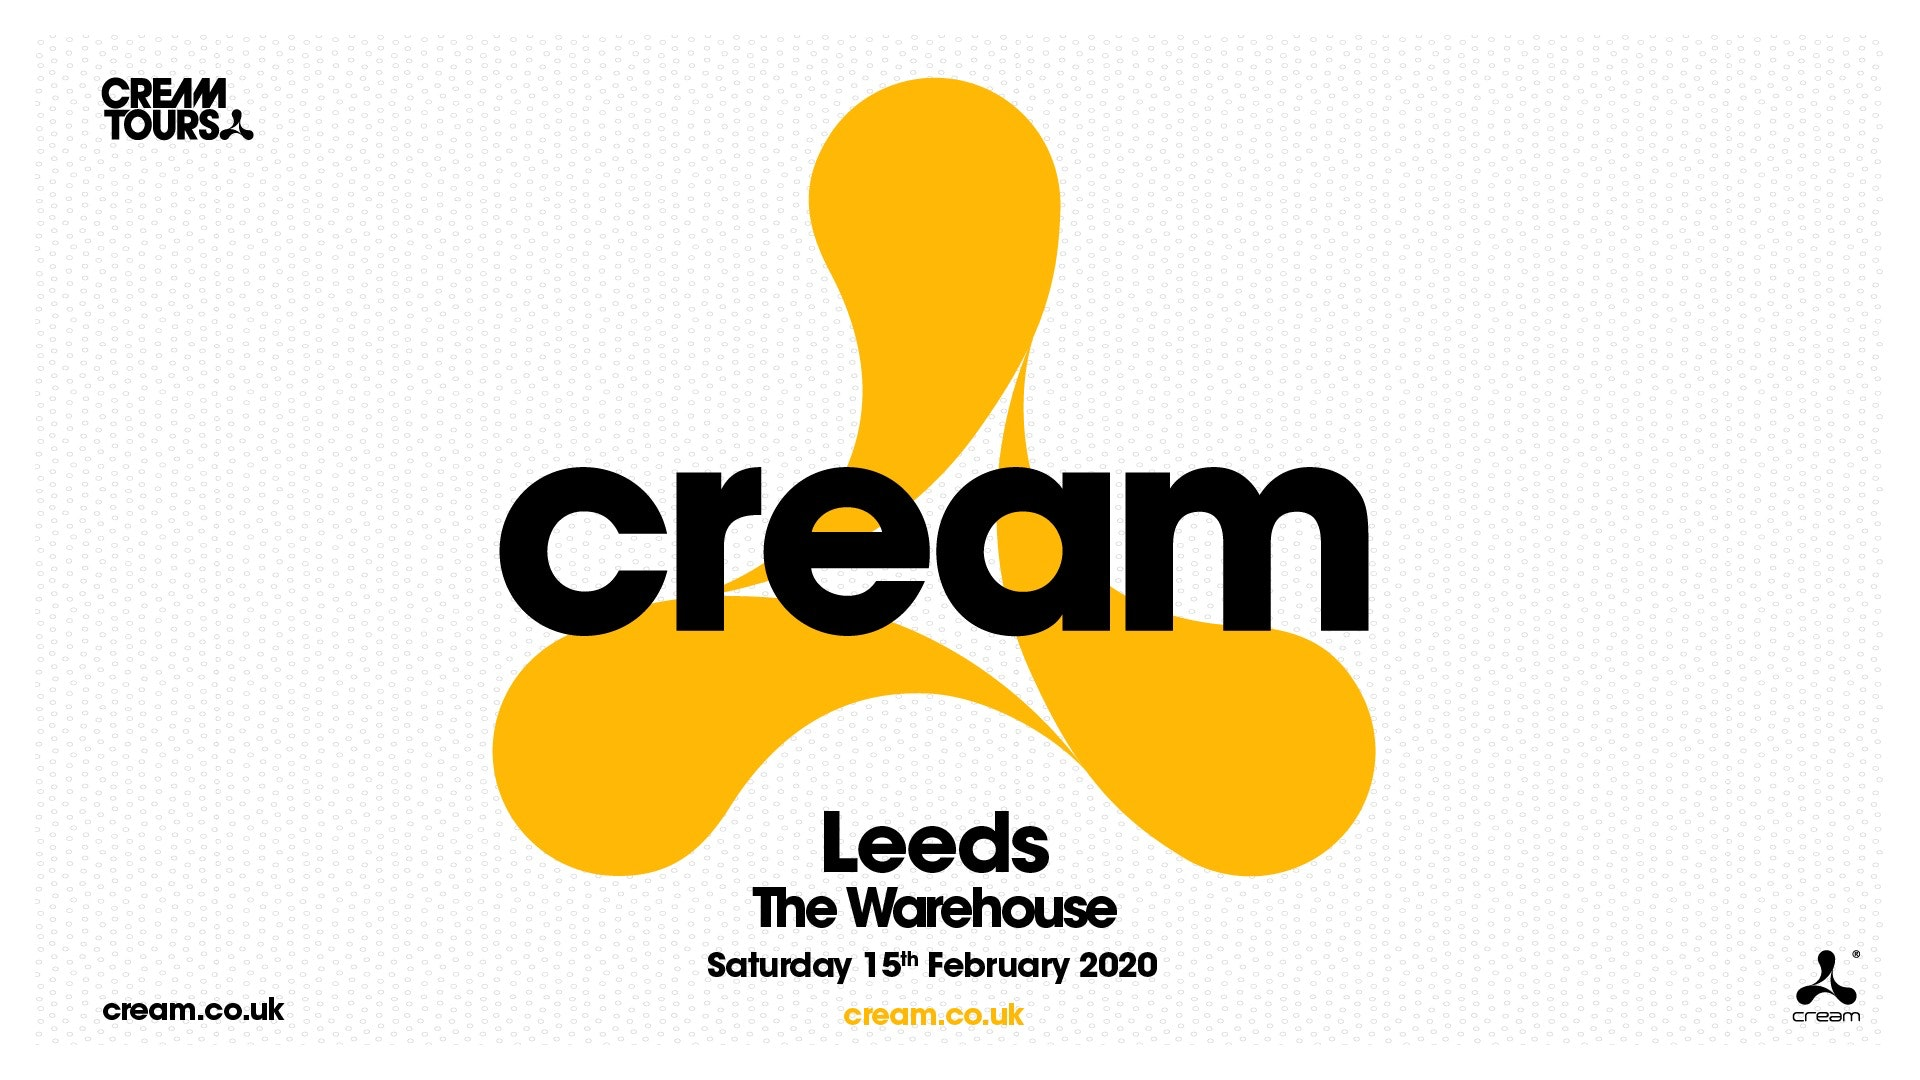 CREAM at The Warehouse Leeds